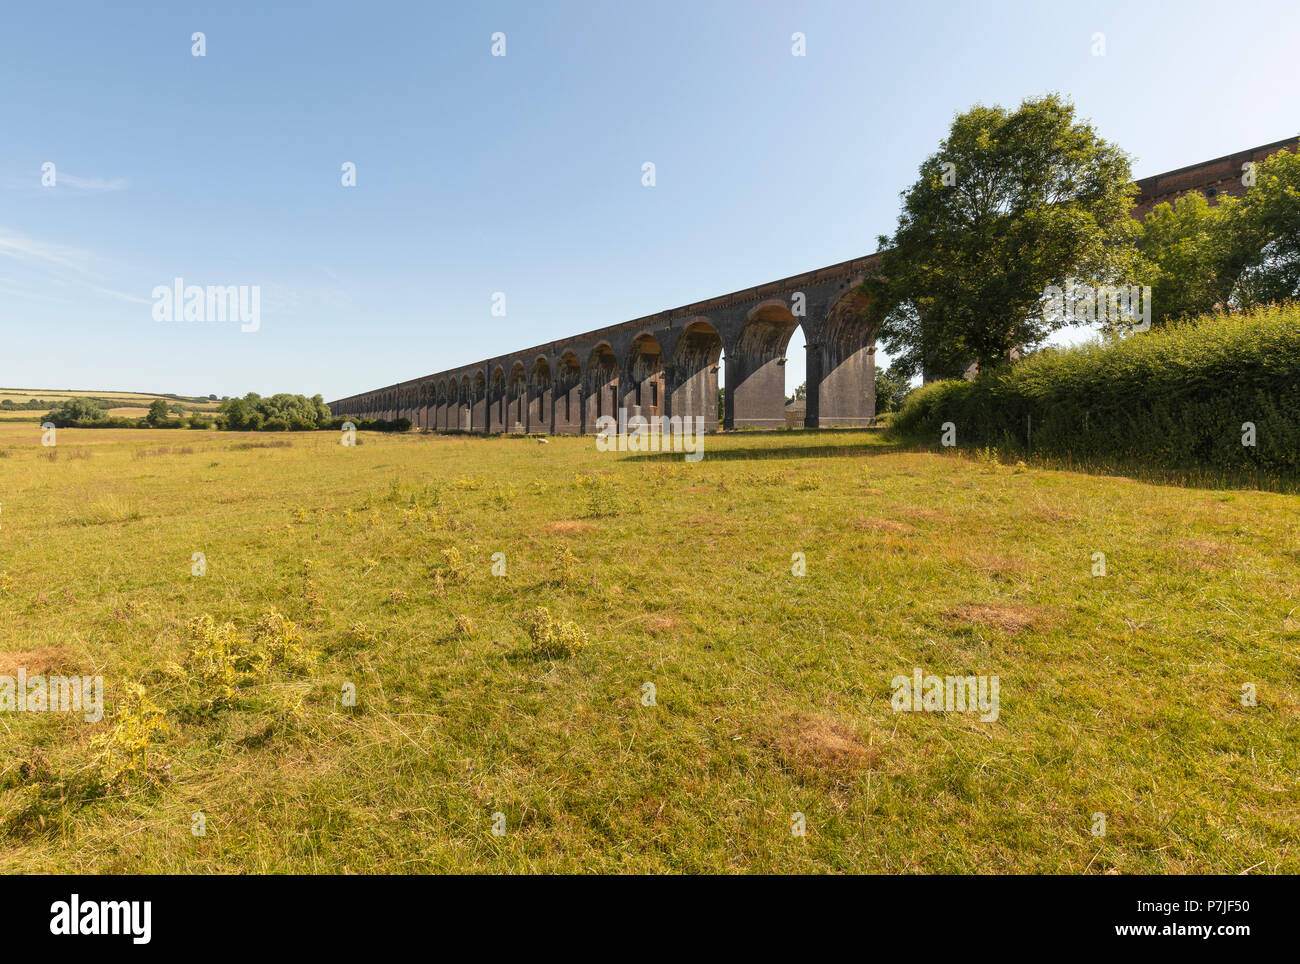 An image of the amazing Harringworth Viaduct with eighty-two arches and 1,275 yards long (1.166 km) shot in Northamptonshire, England, UK. - Stock Image